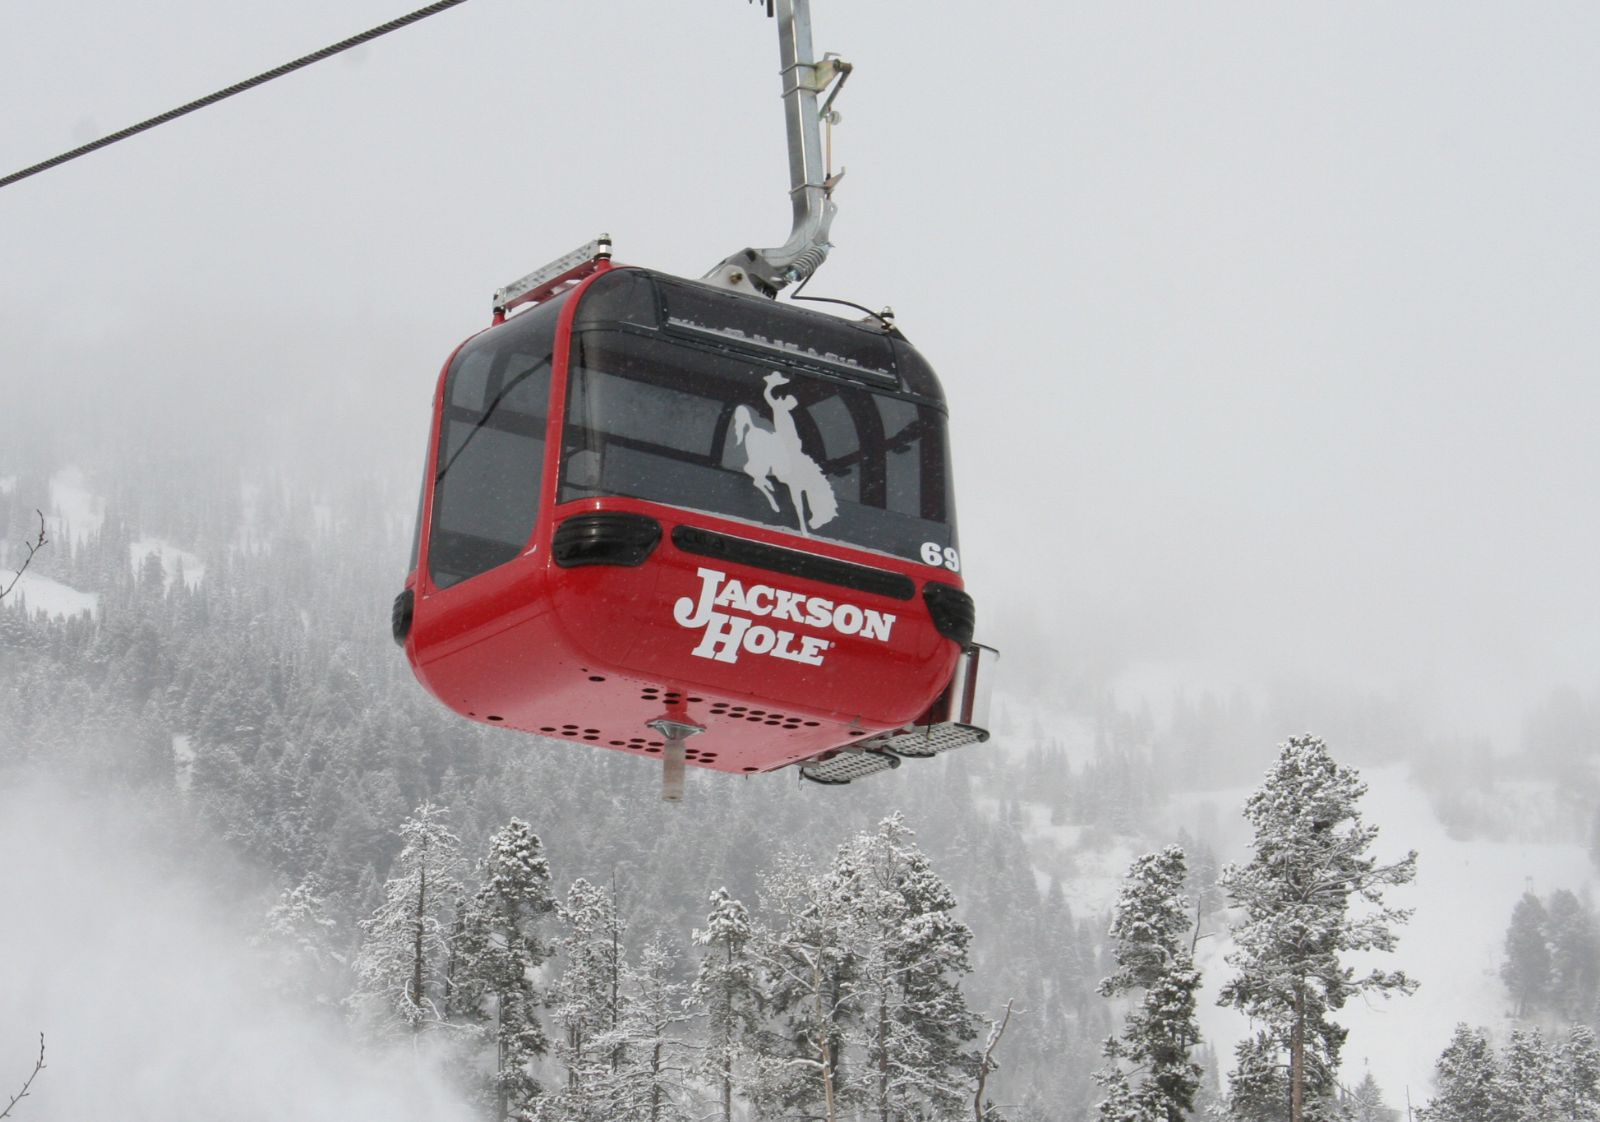 Jackson Hole Snow Report